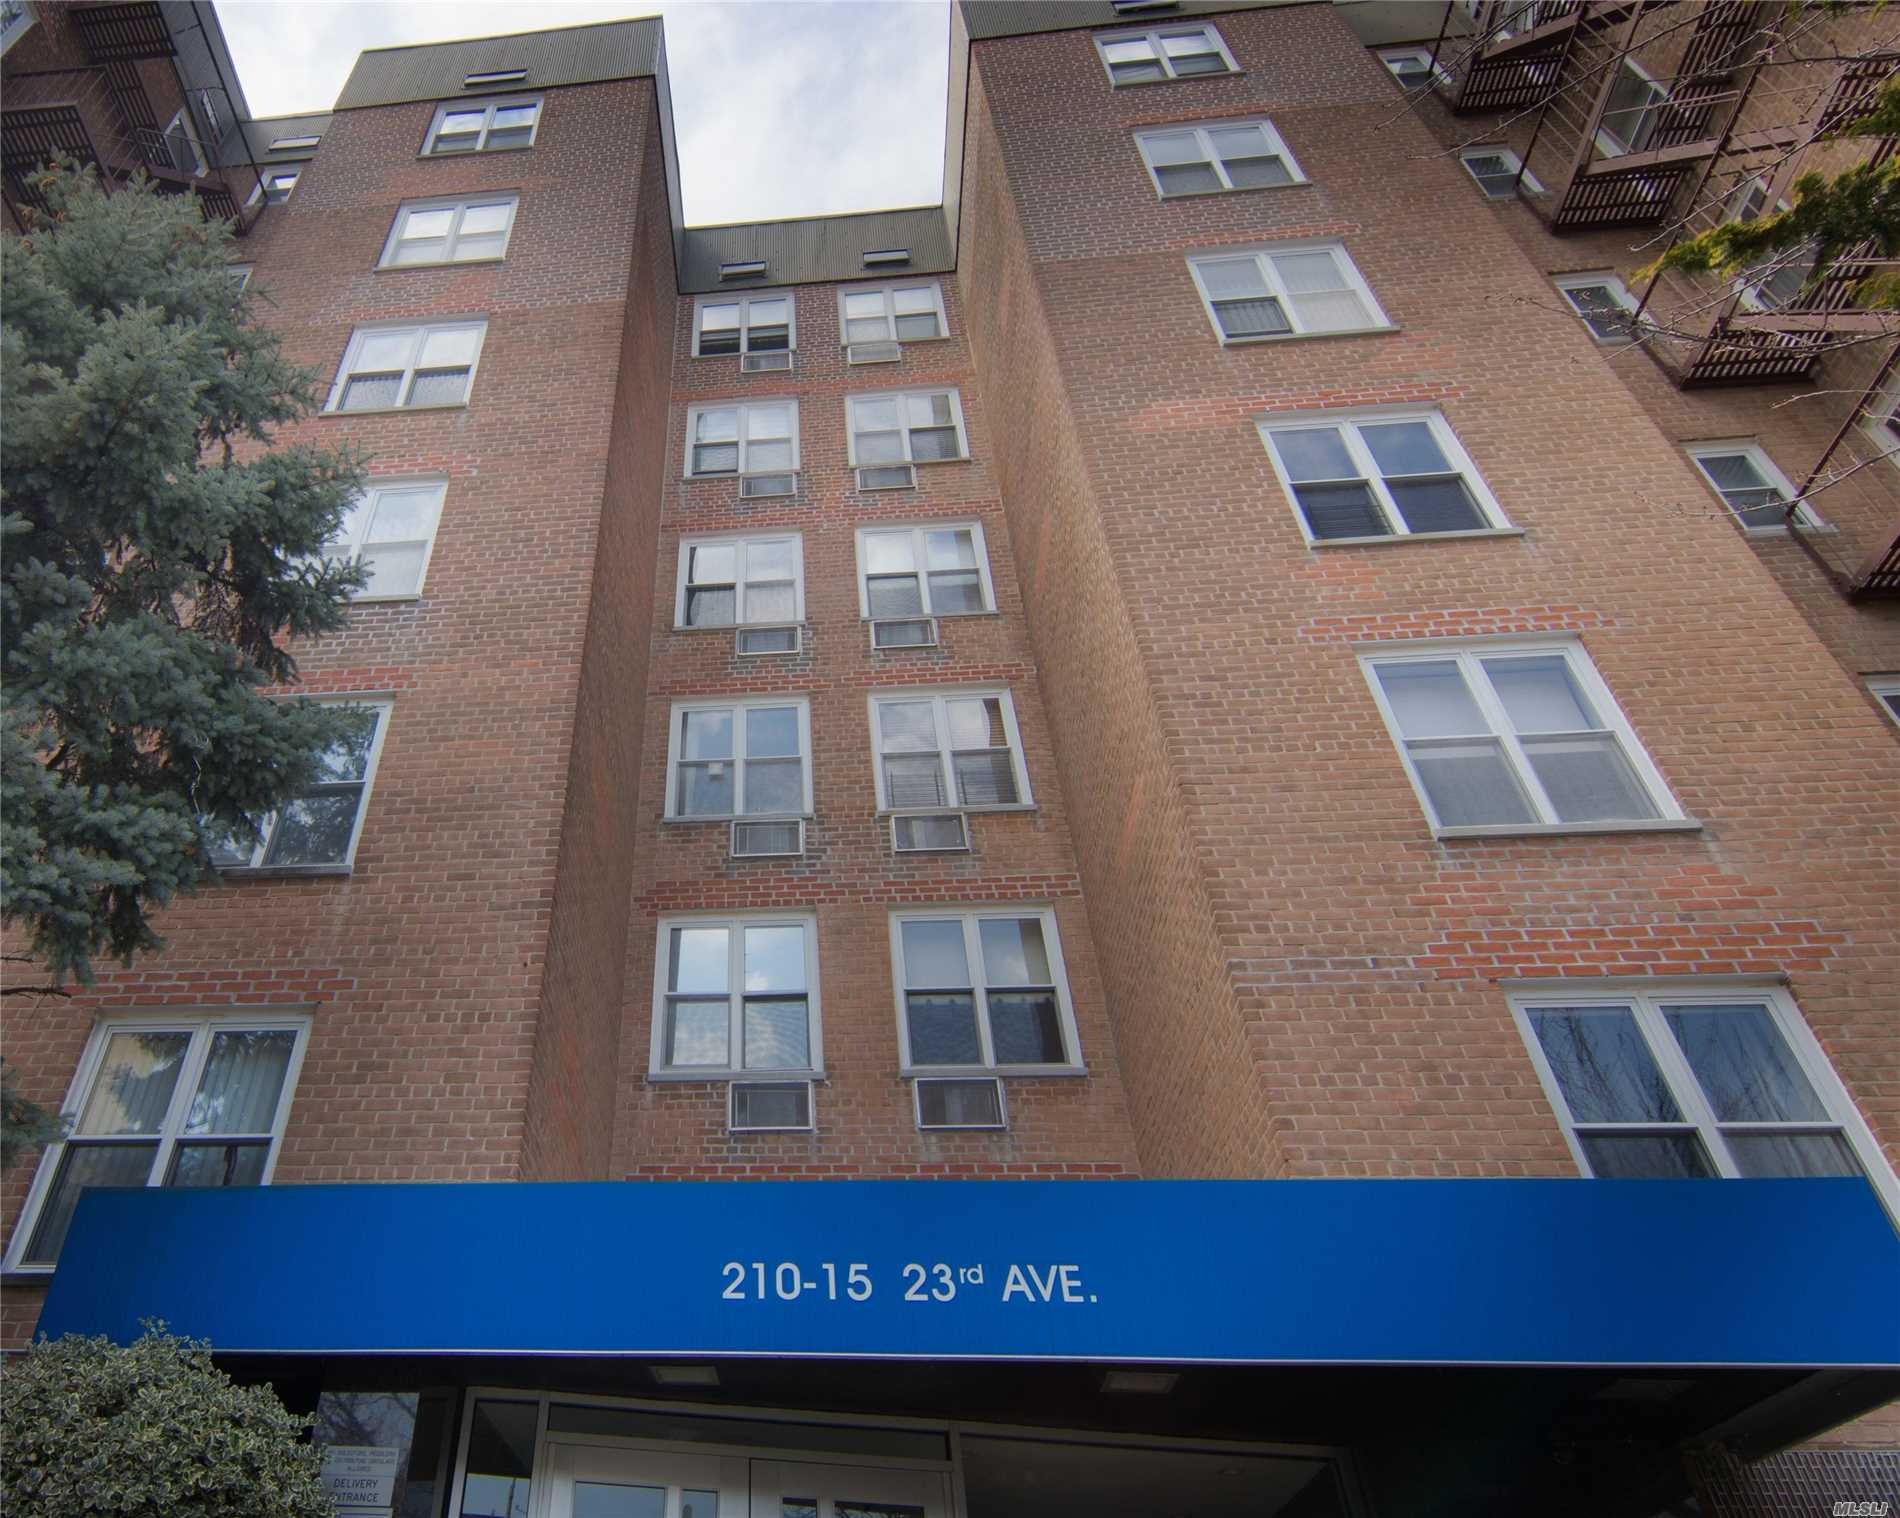 210-15 23rd Ave, 1A - Bayside, New York